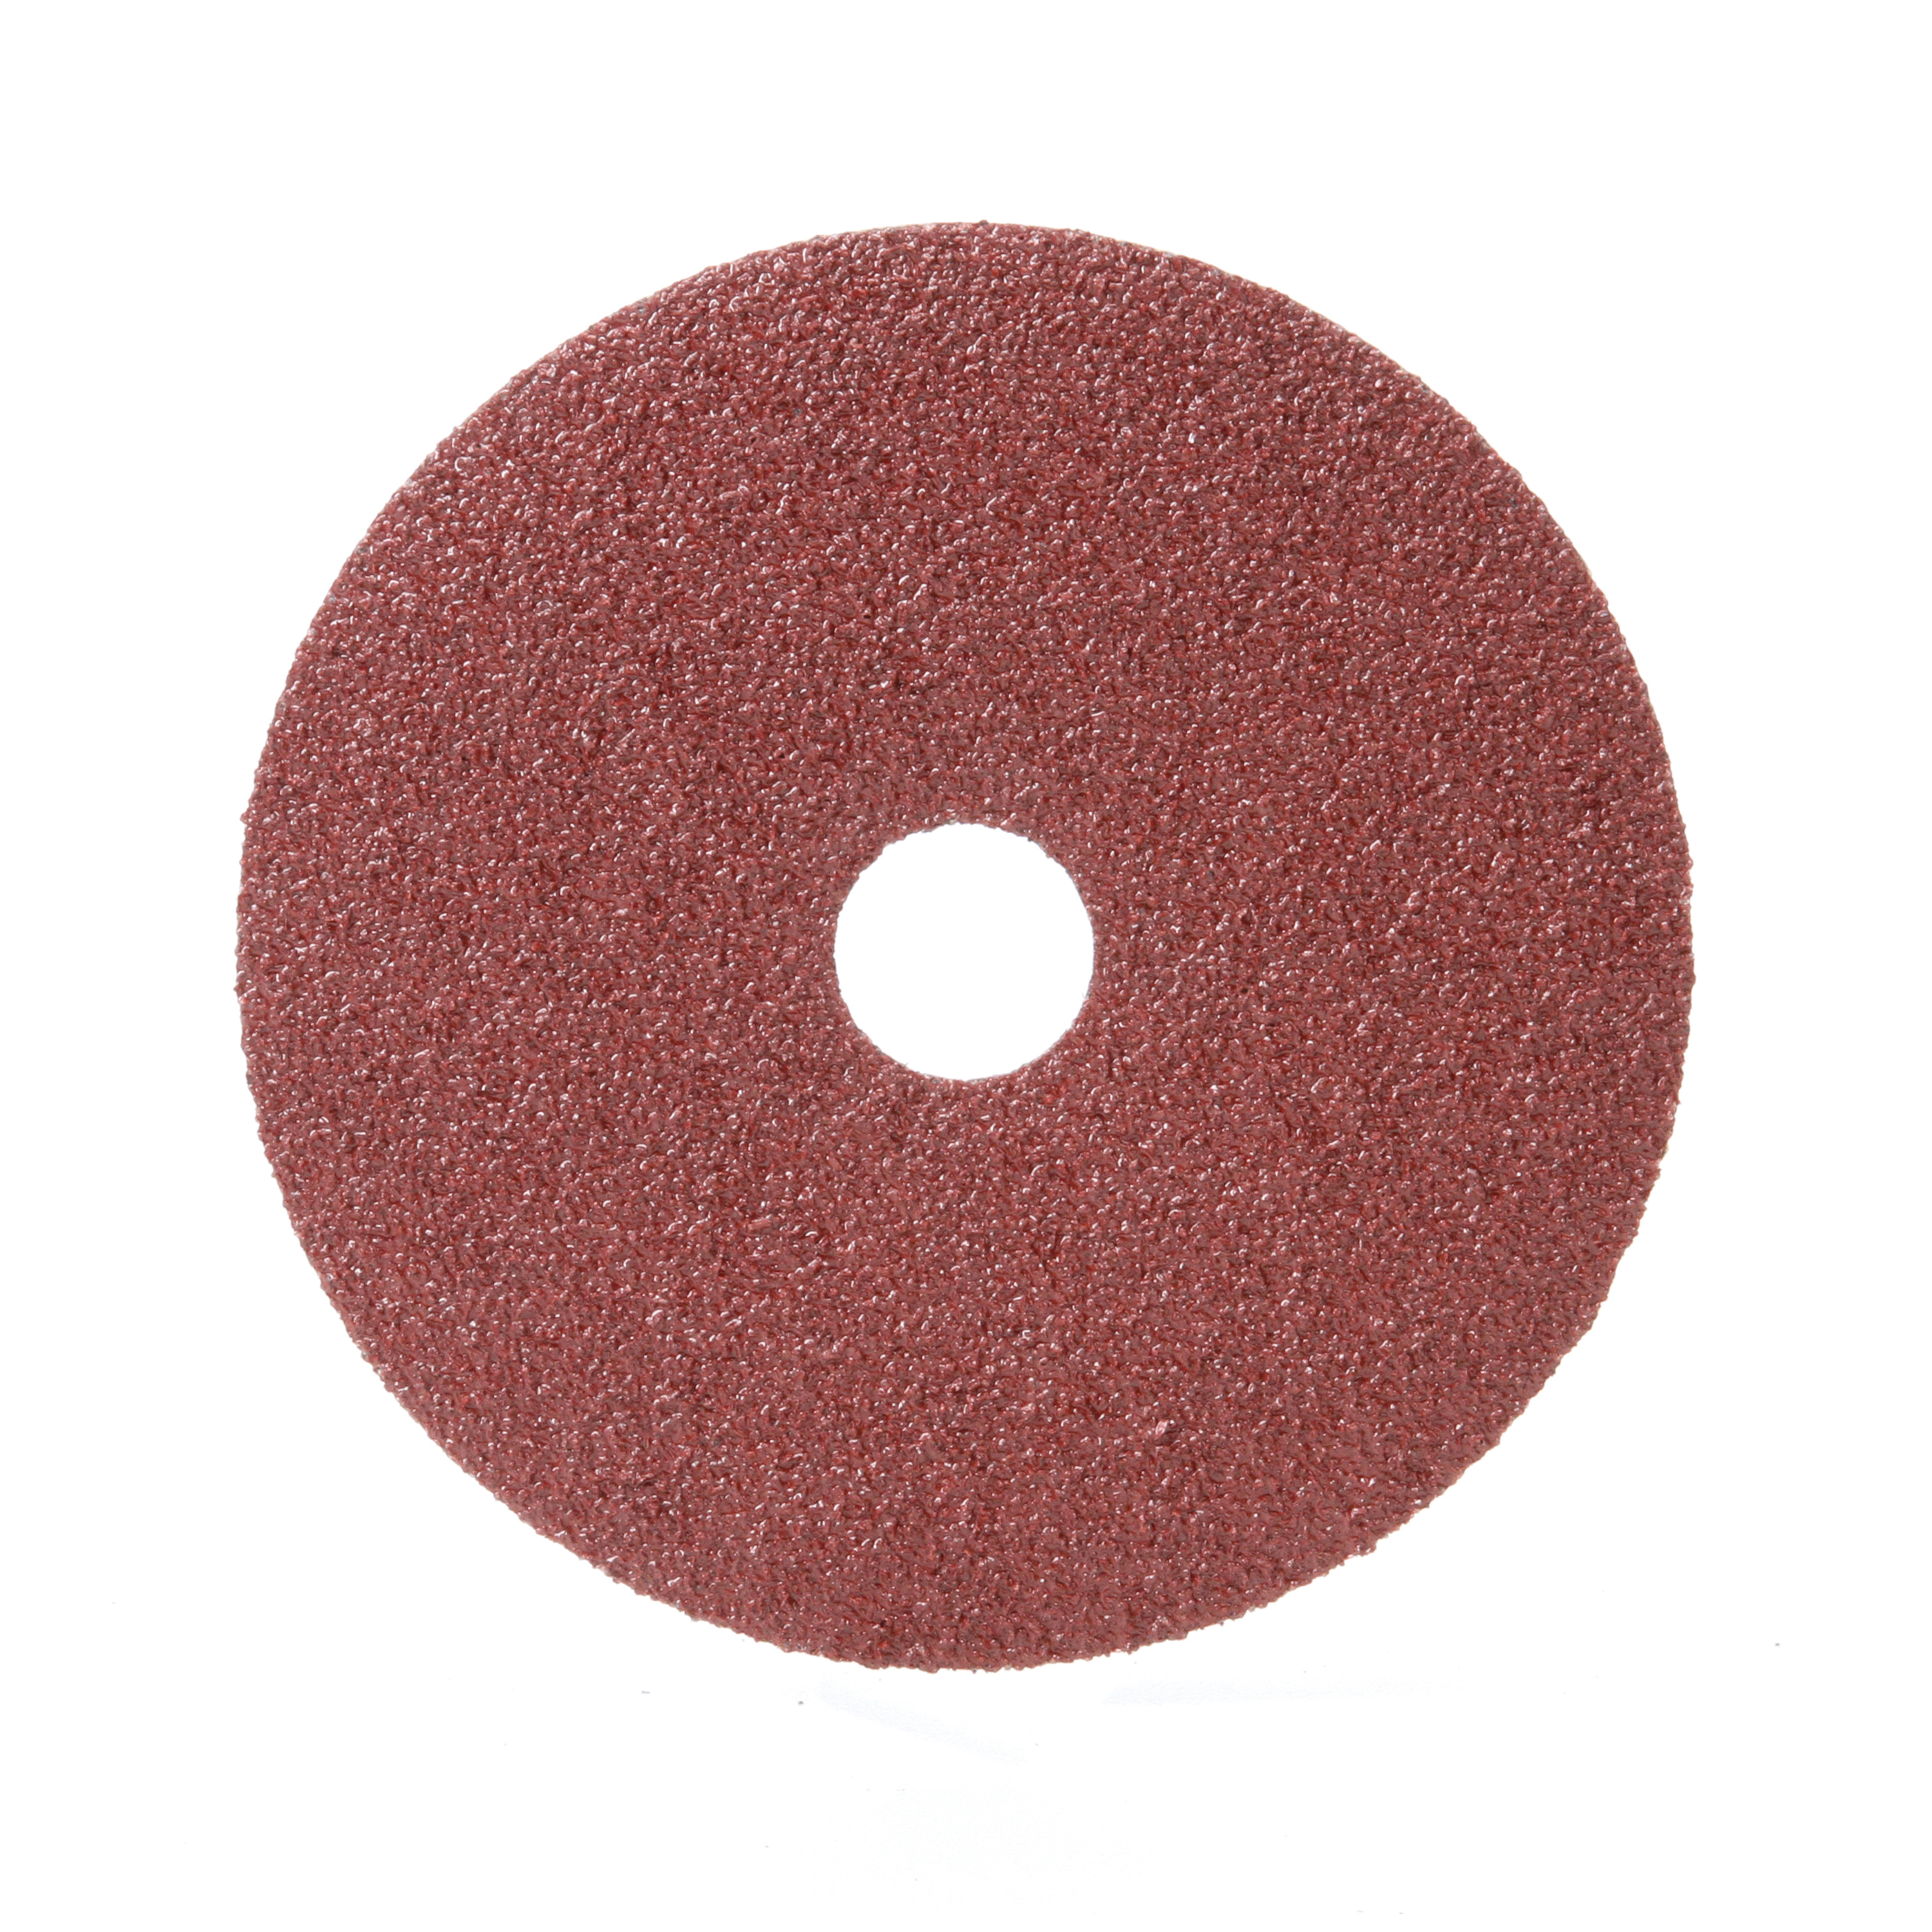 3M™ 051144-81372 Close Coated Abrasive Disc, 5 in Dia, 7/8 in Center Hole, 36 Grit, Very Coarse Grade, Aluminum Oxide Abrasive, Arbor Attachment